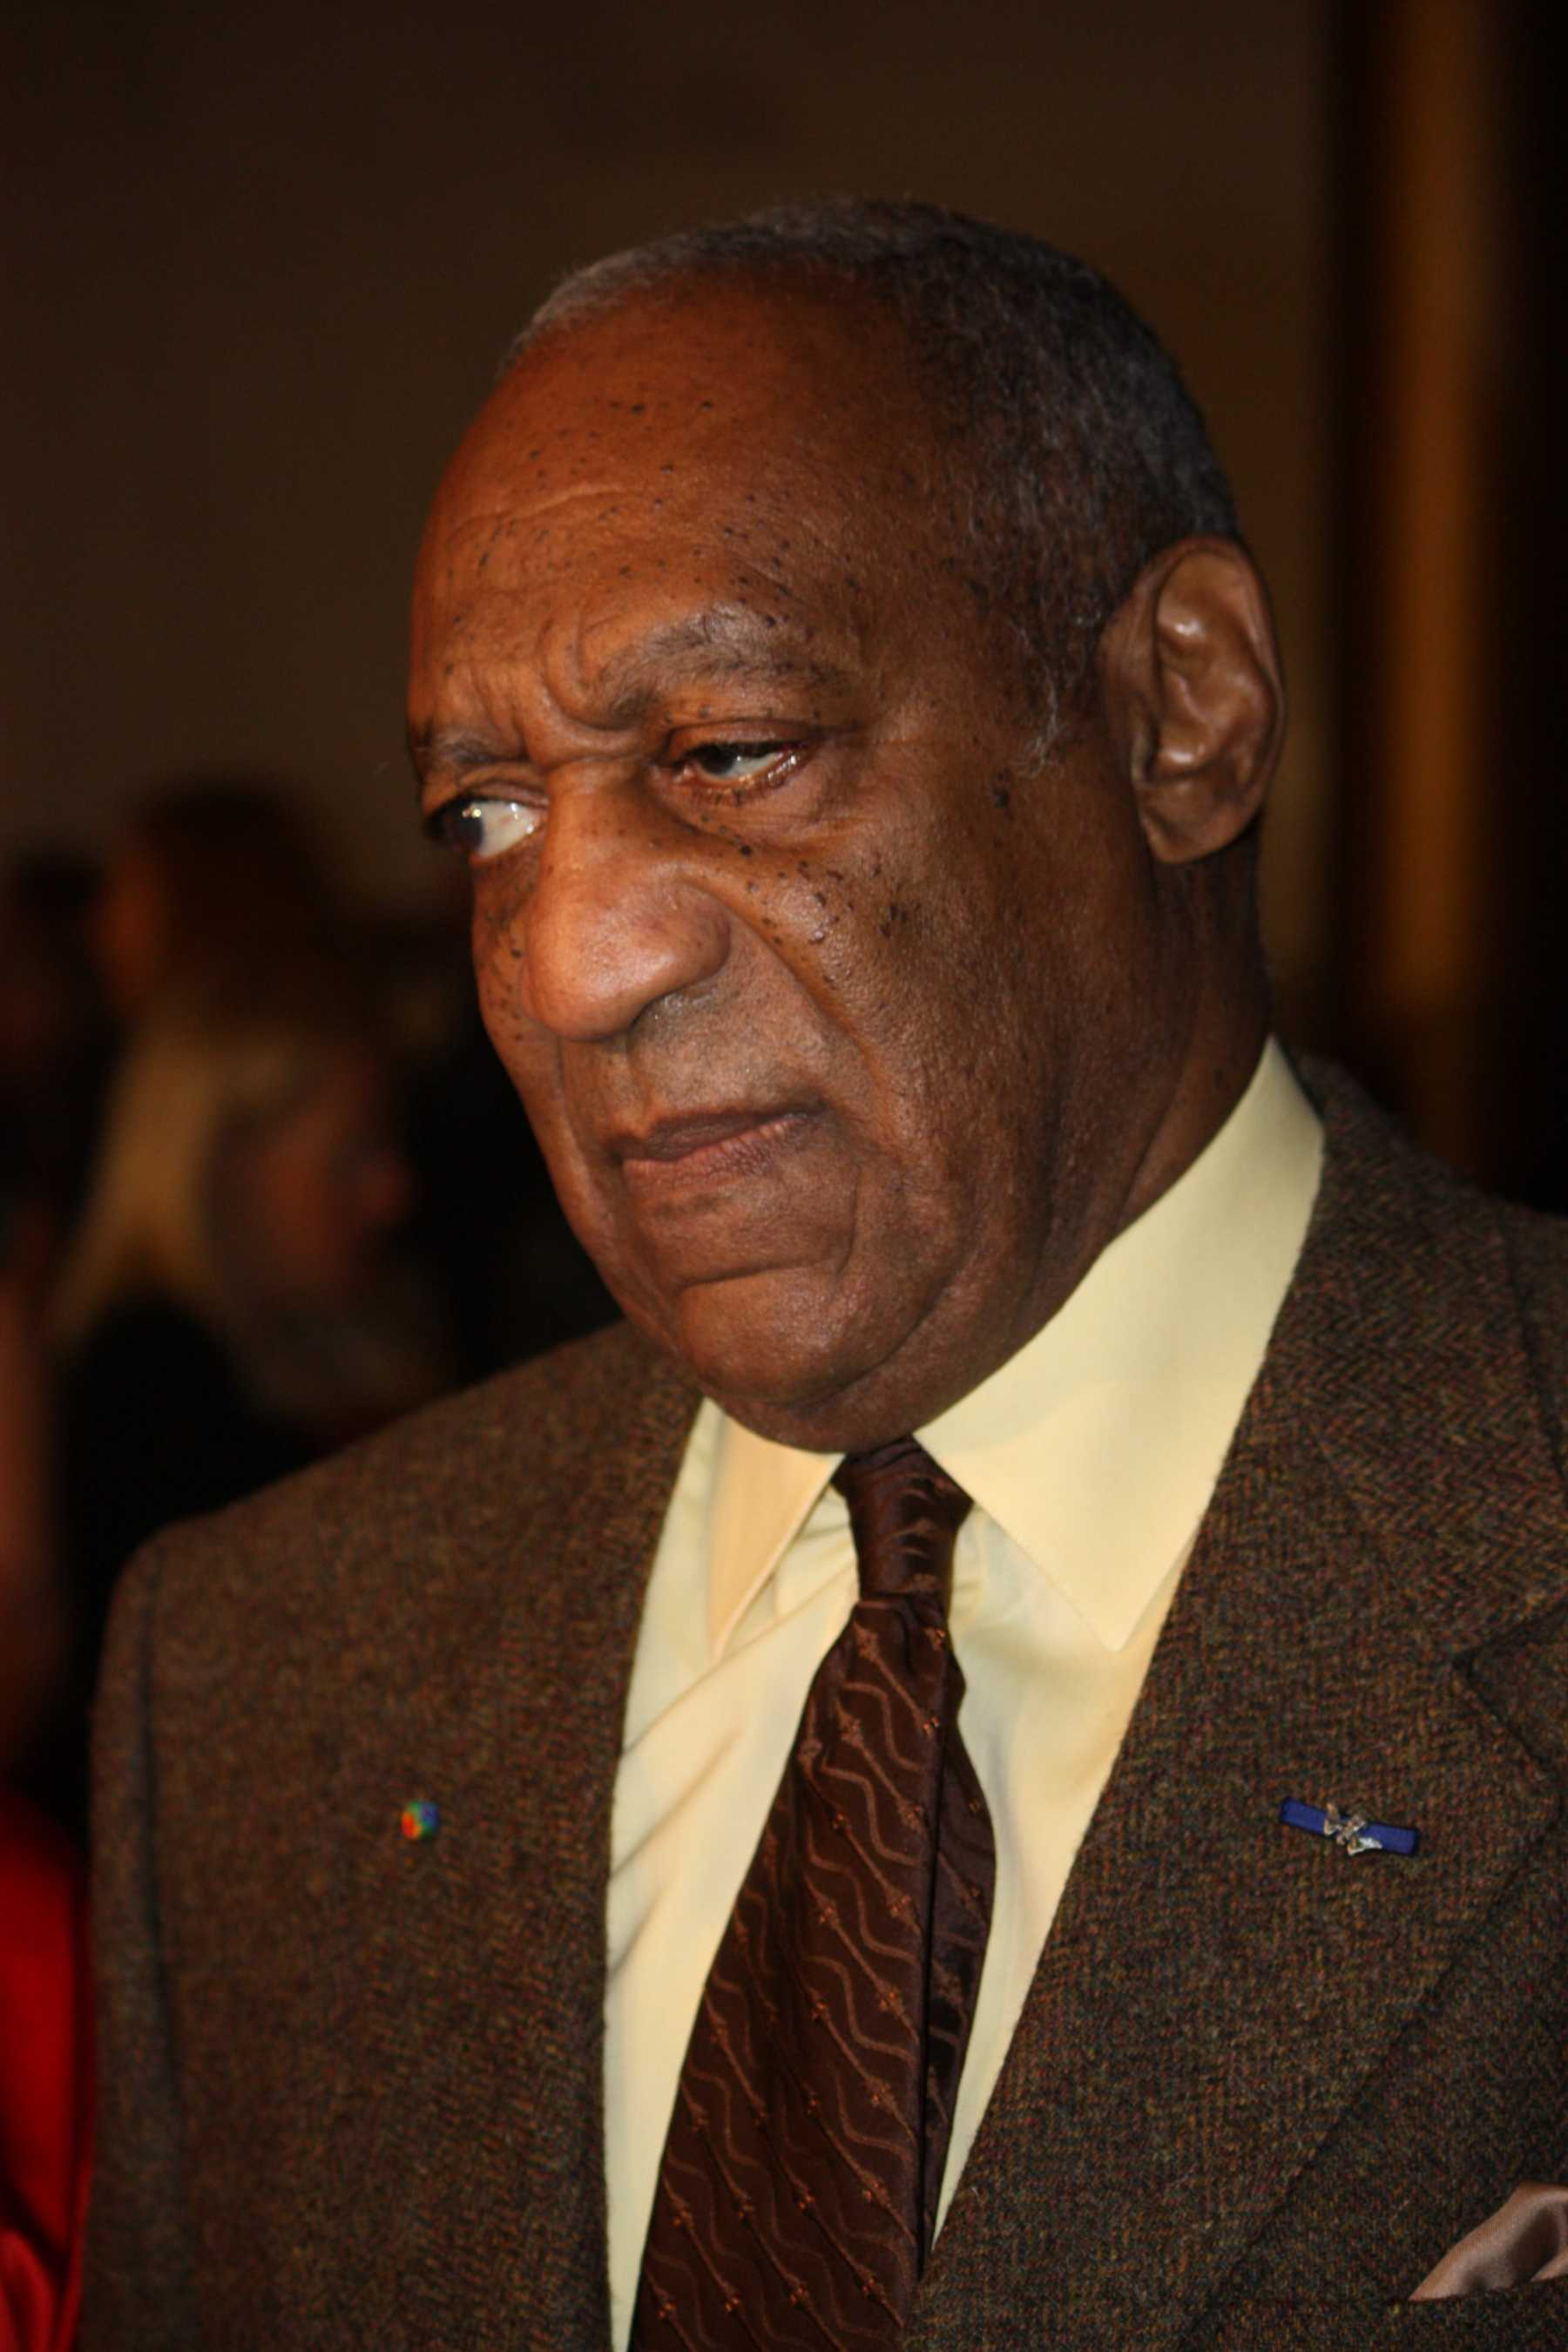 Bill Cosby Admitted In 2005 Deposition To Drugging Women | Bill Cosby